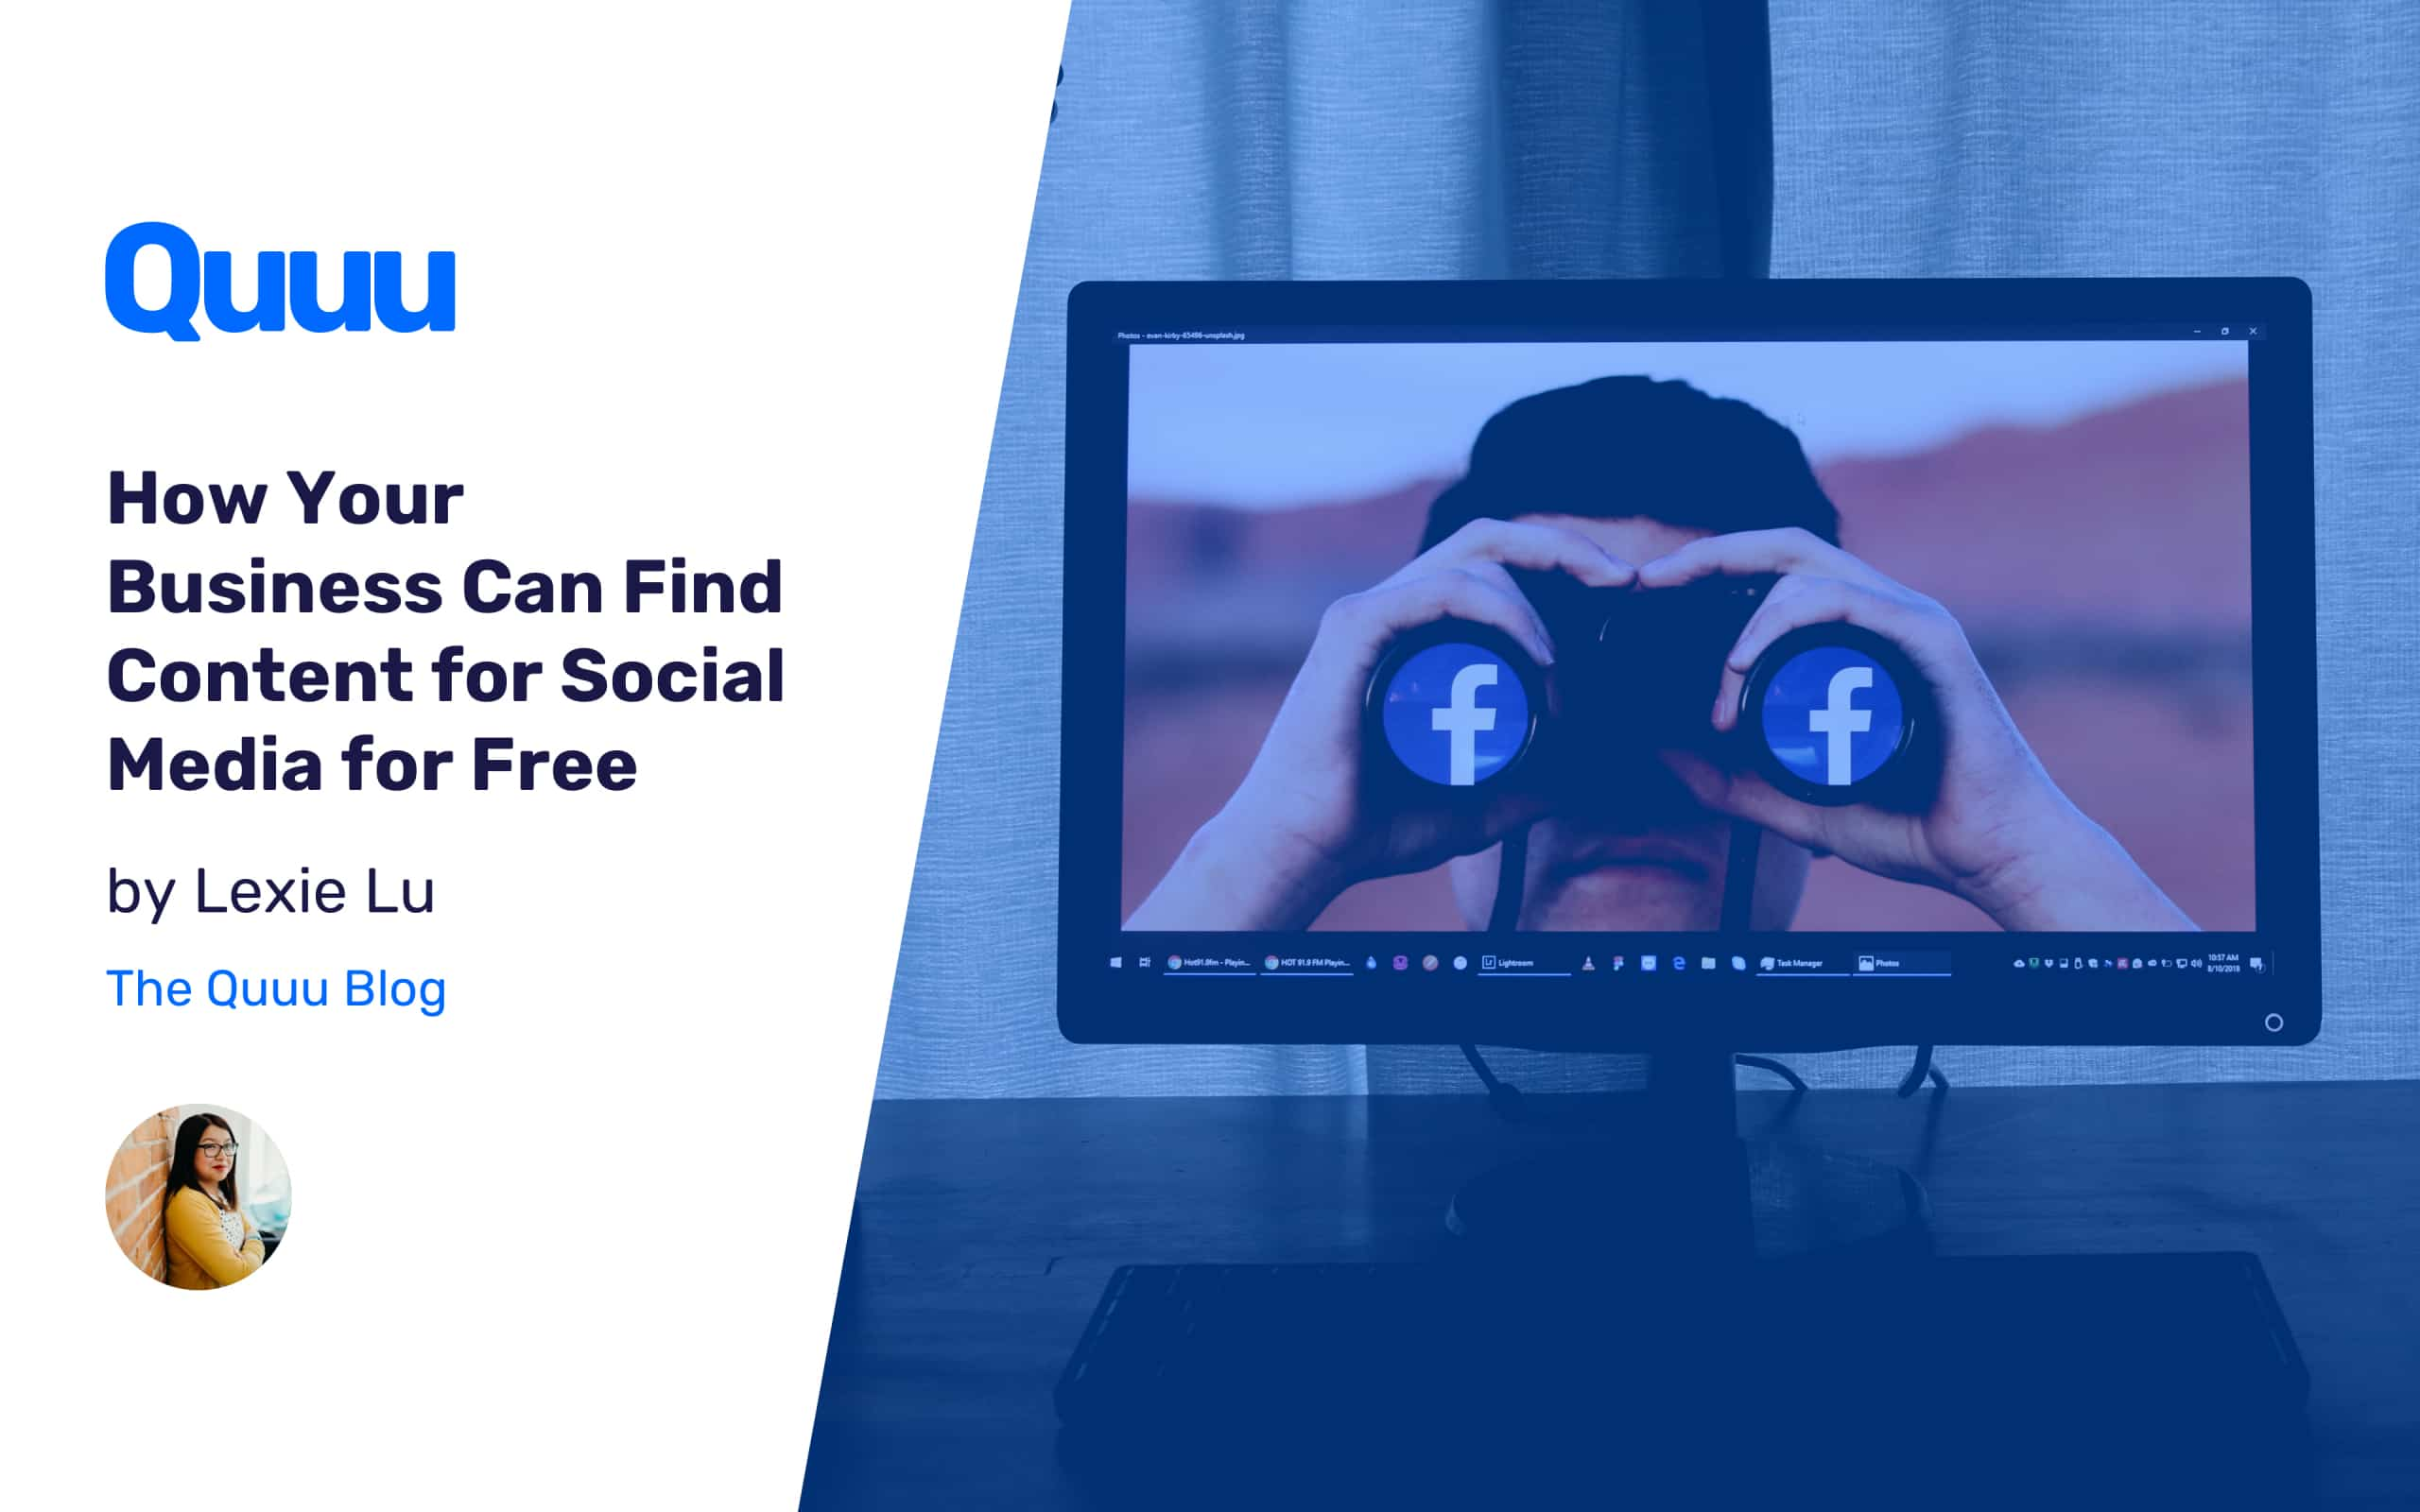 How Your Business Can Find Content for Social Media for Free